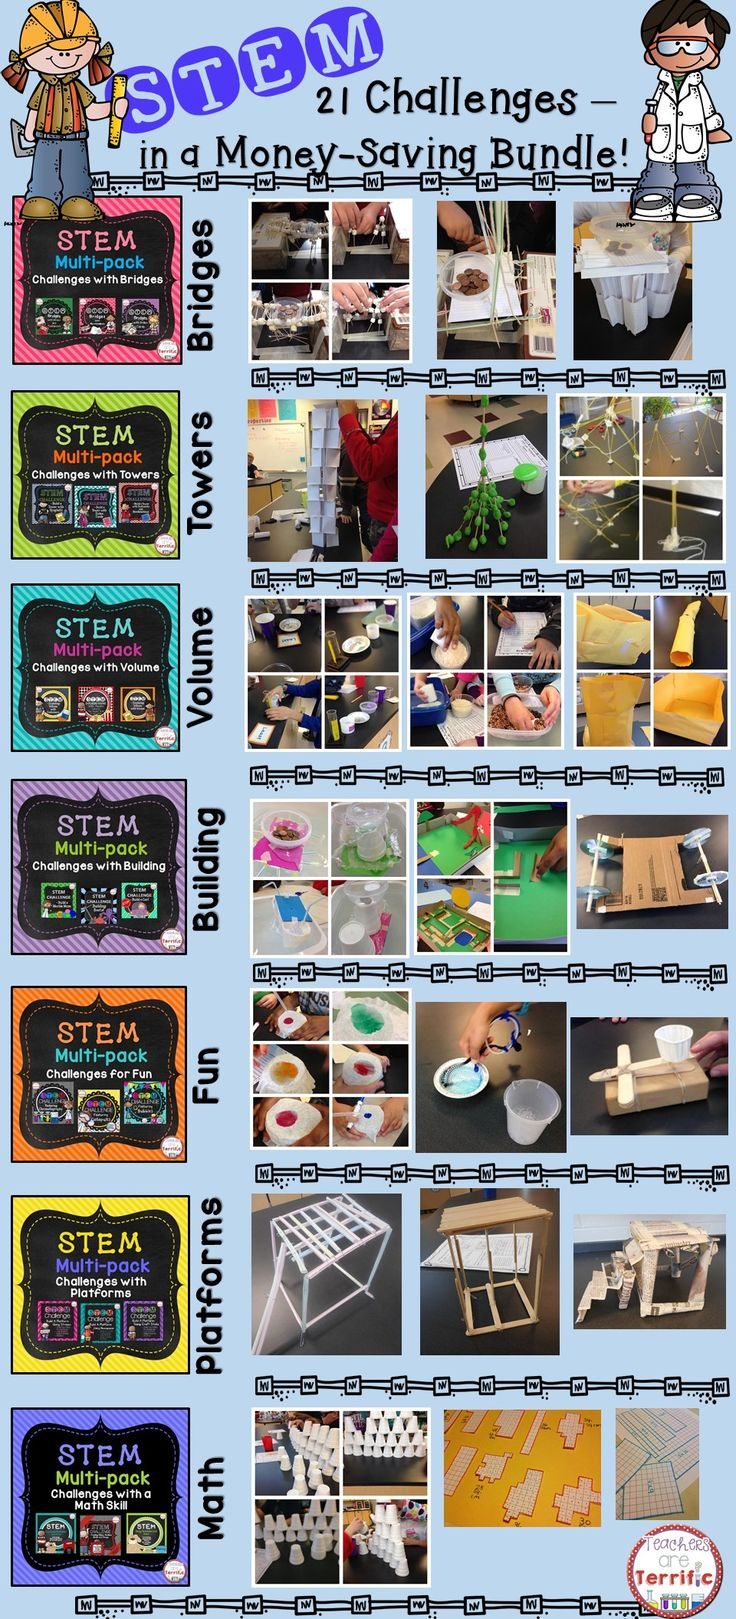 A Money-saving Mega Bundle! Includes 7 Multi-packs of STEM Challenges- a total of 21 activities! Each has step-by-step procedures, materials lists, helpful hints, and lab sheets!